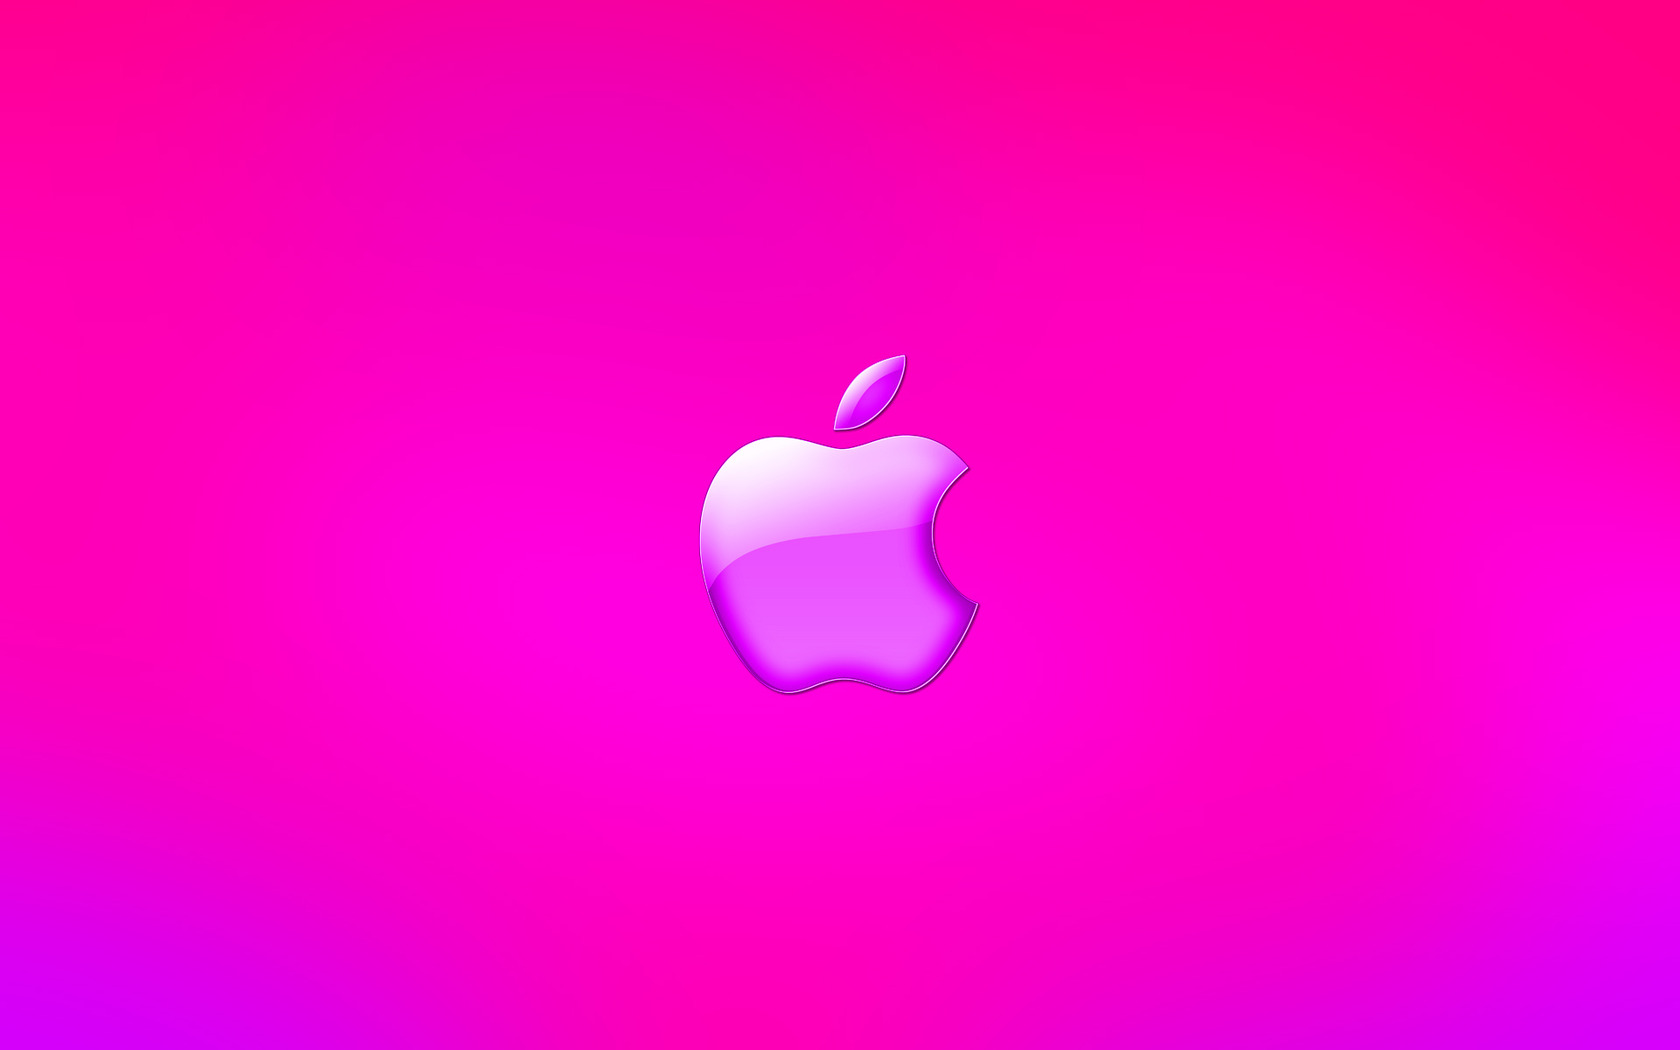 ... Pink Apple logo 1680x1050 wallpaper ...